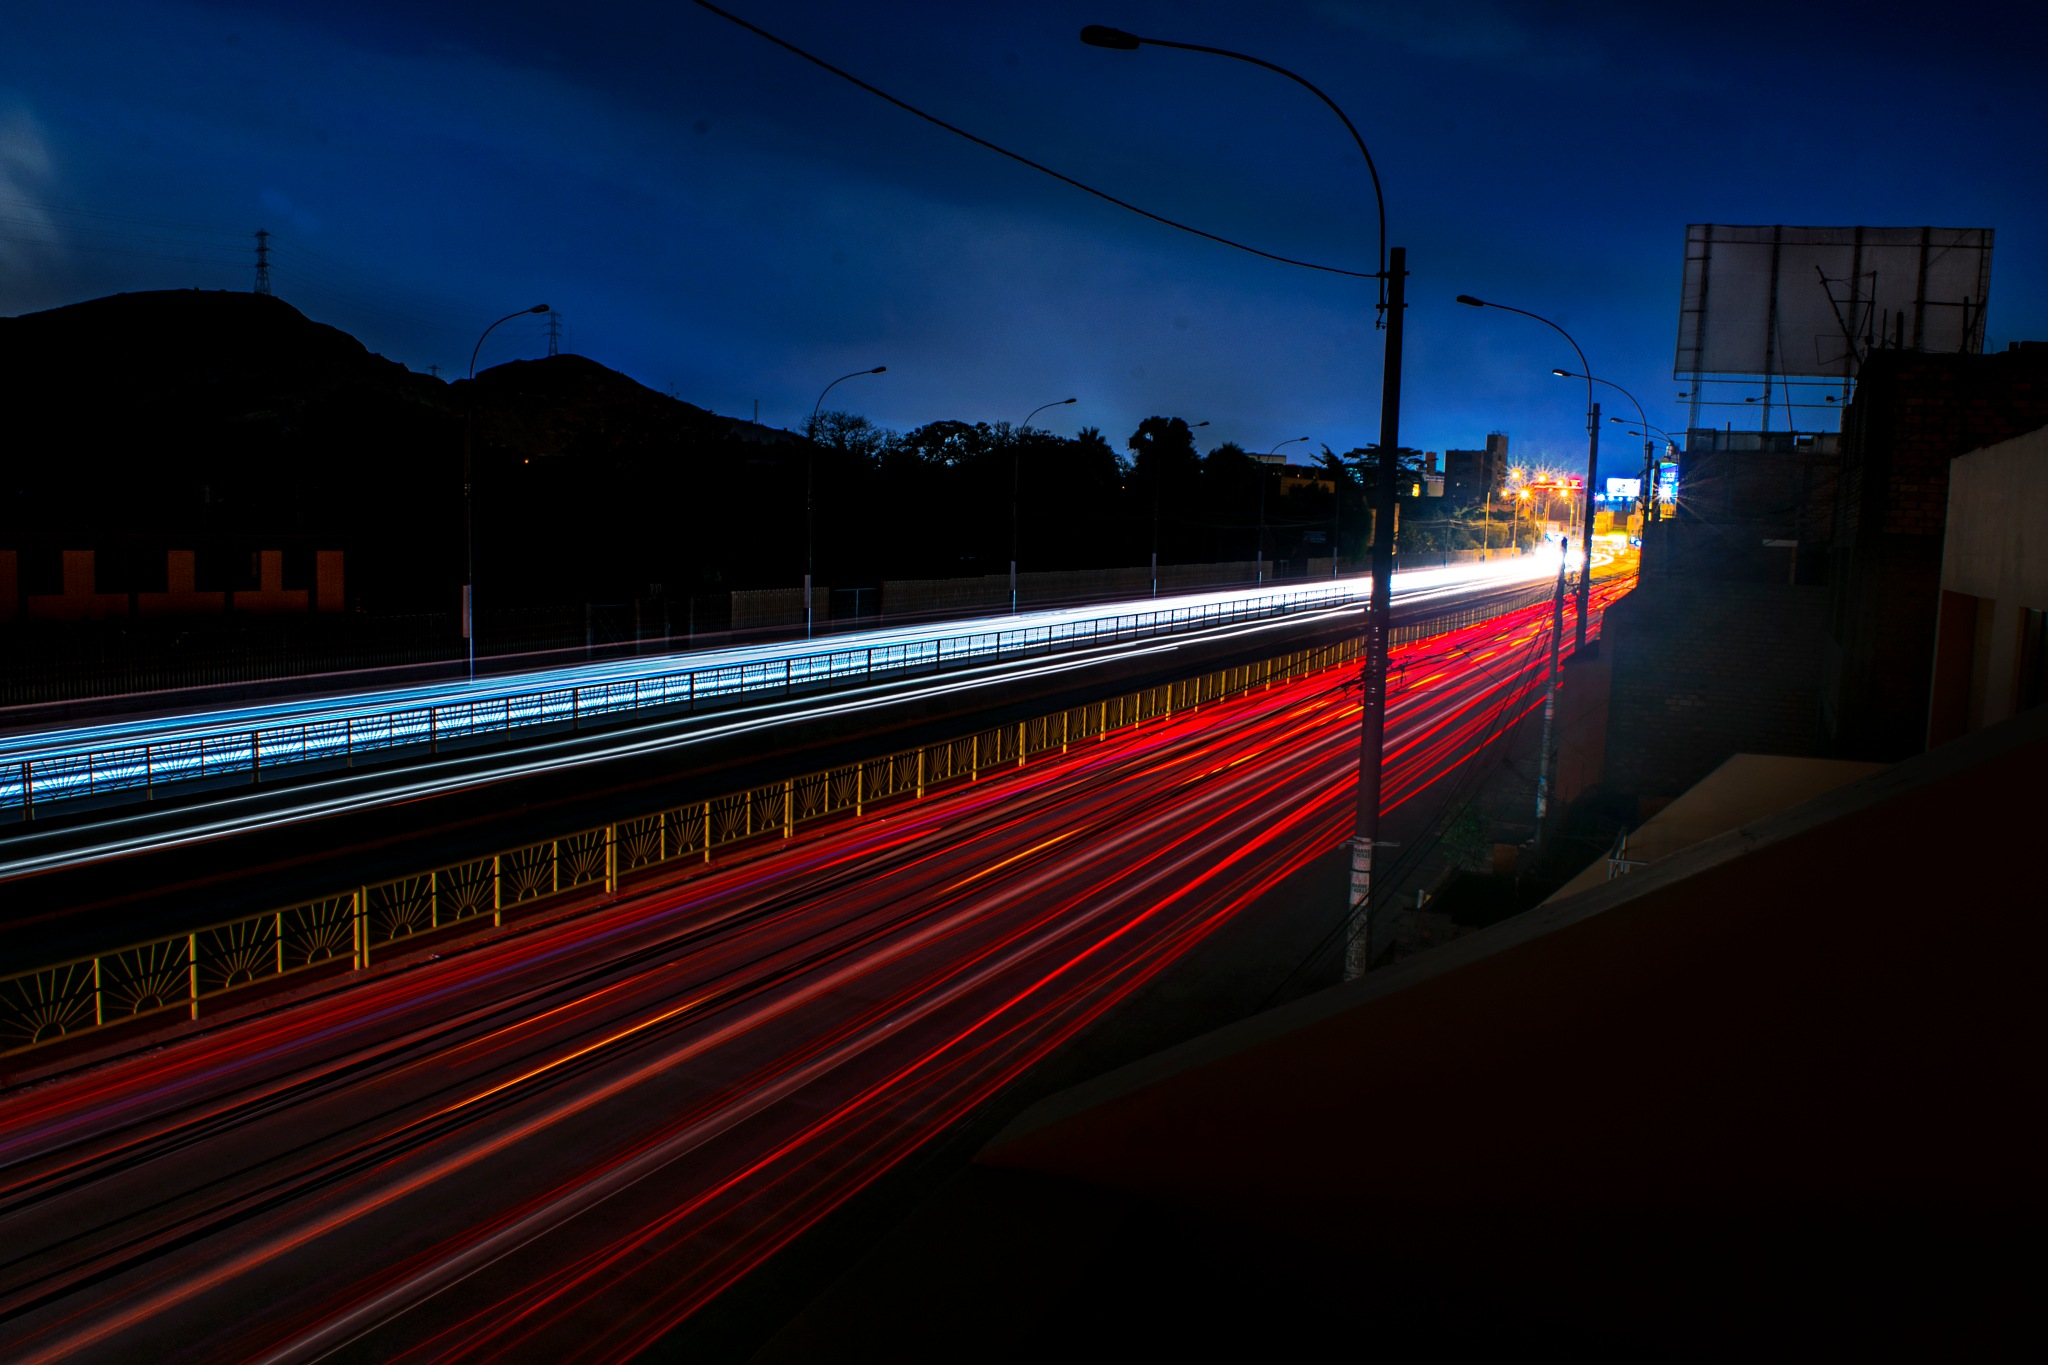 Longe exposure Street by Warren Christopher Chirinos Pinedo